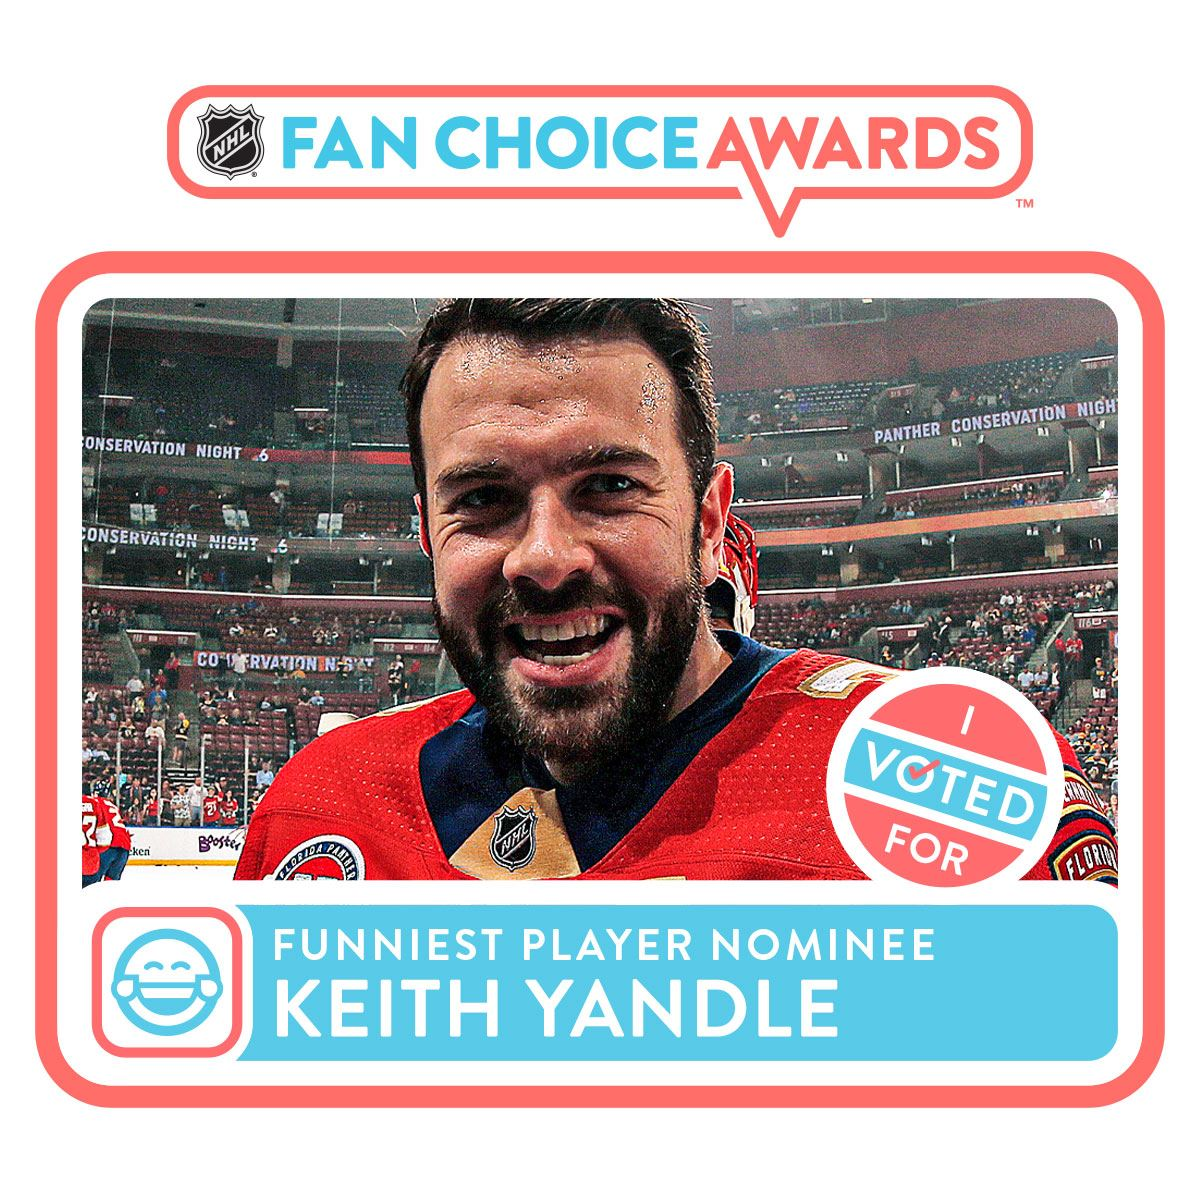 Yandle! He's the only choice... nhl.com/fans/nhl-fan-c…